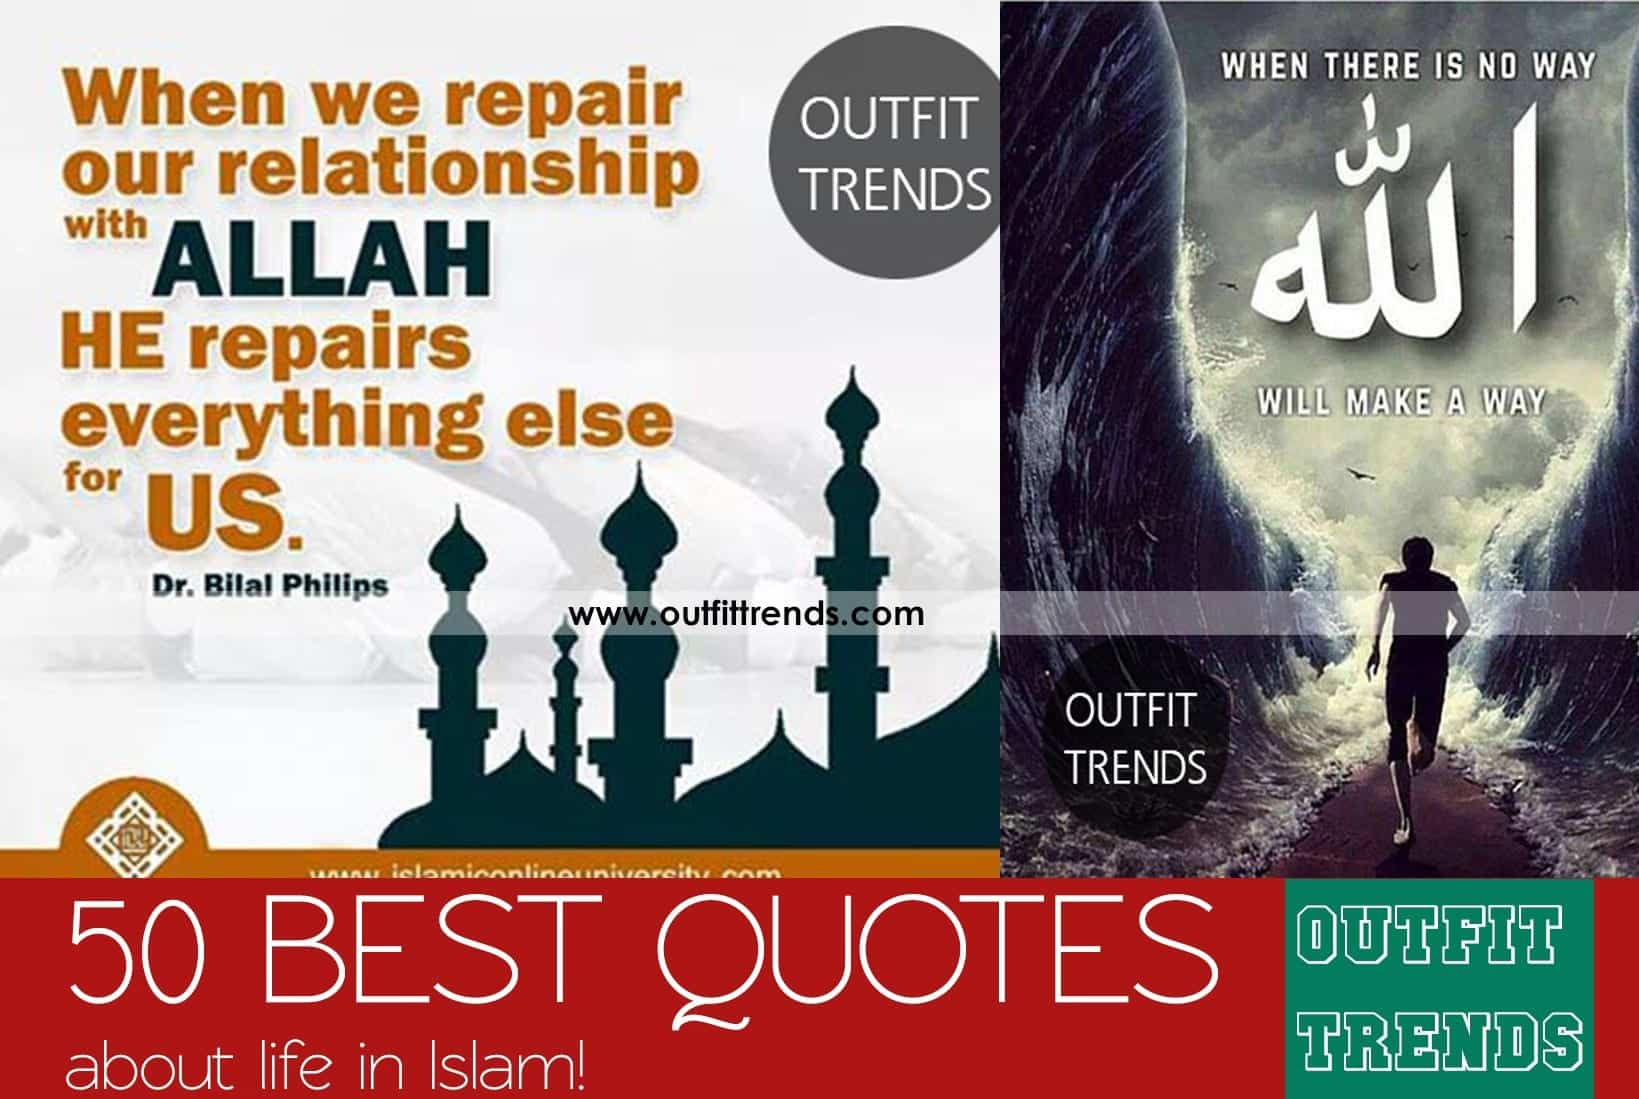 Islamic Quotes About Life Islamic Quotes About Love50 Best Quotes About Relationships